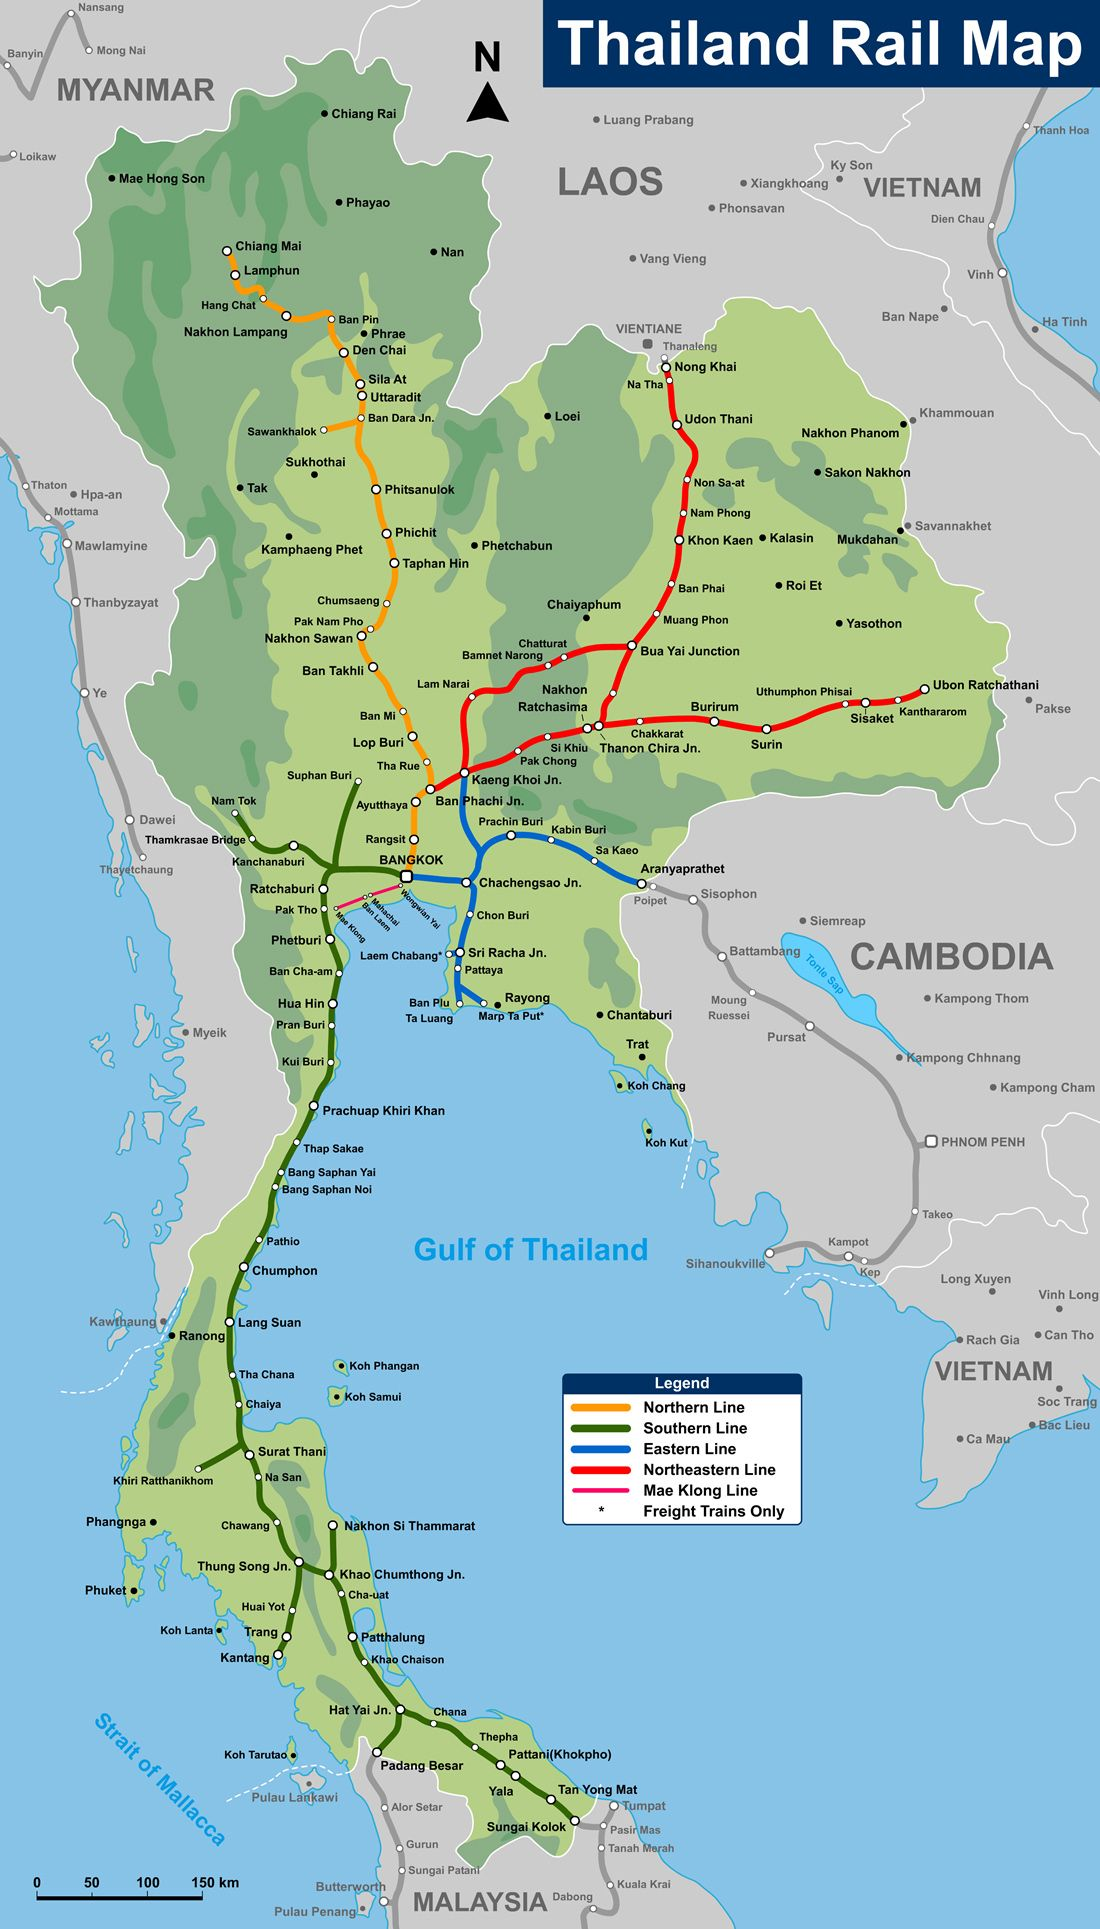 thailand rail map thailand bangkok pinterest tha lande thailande voyage et road trip. Black Bedroom Furniture Sets. Home Design Ideas